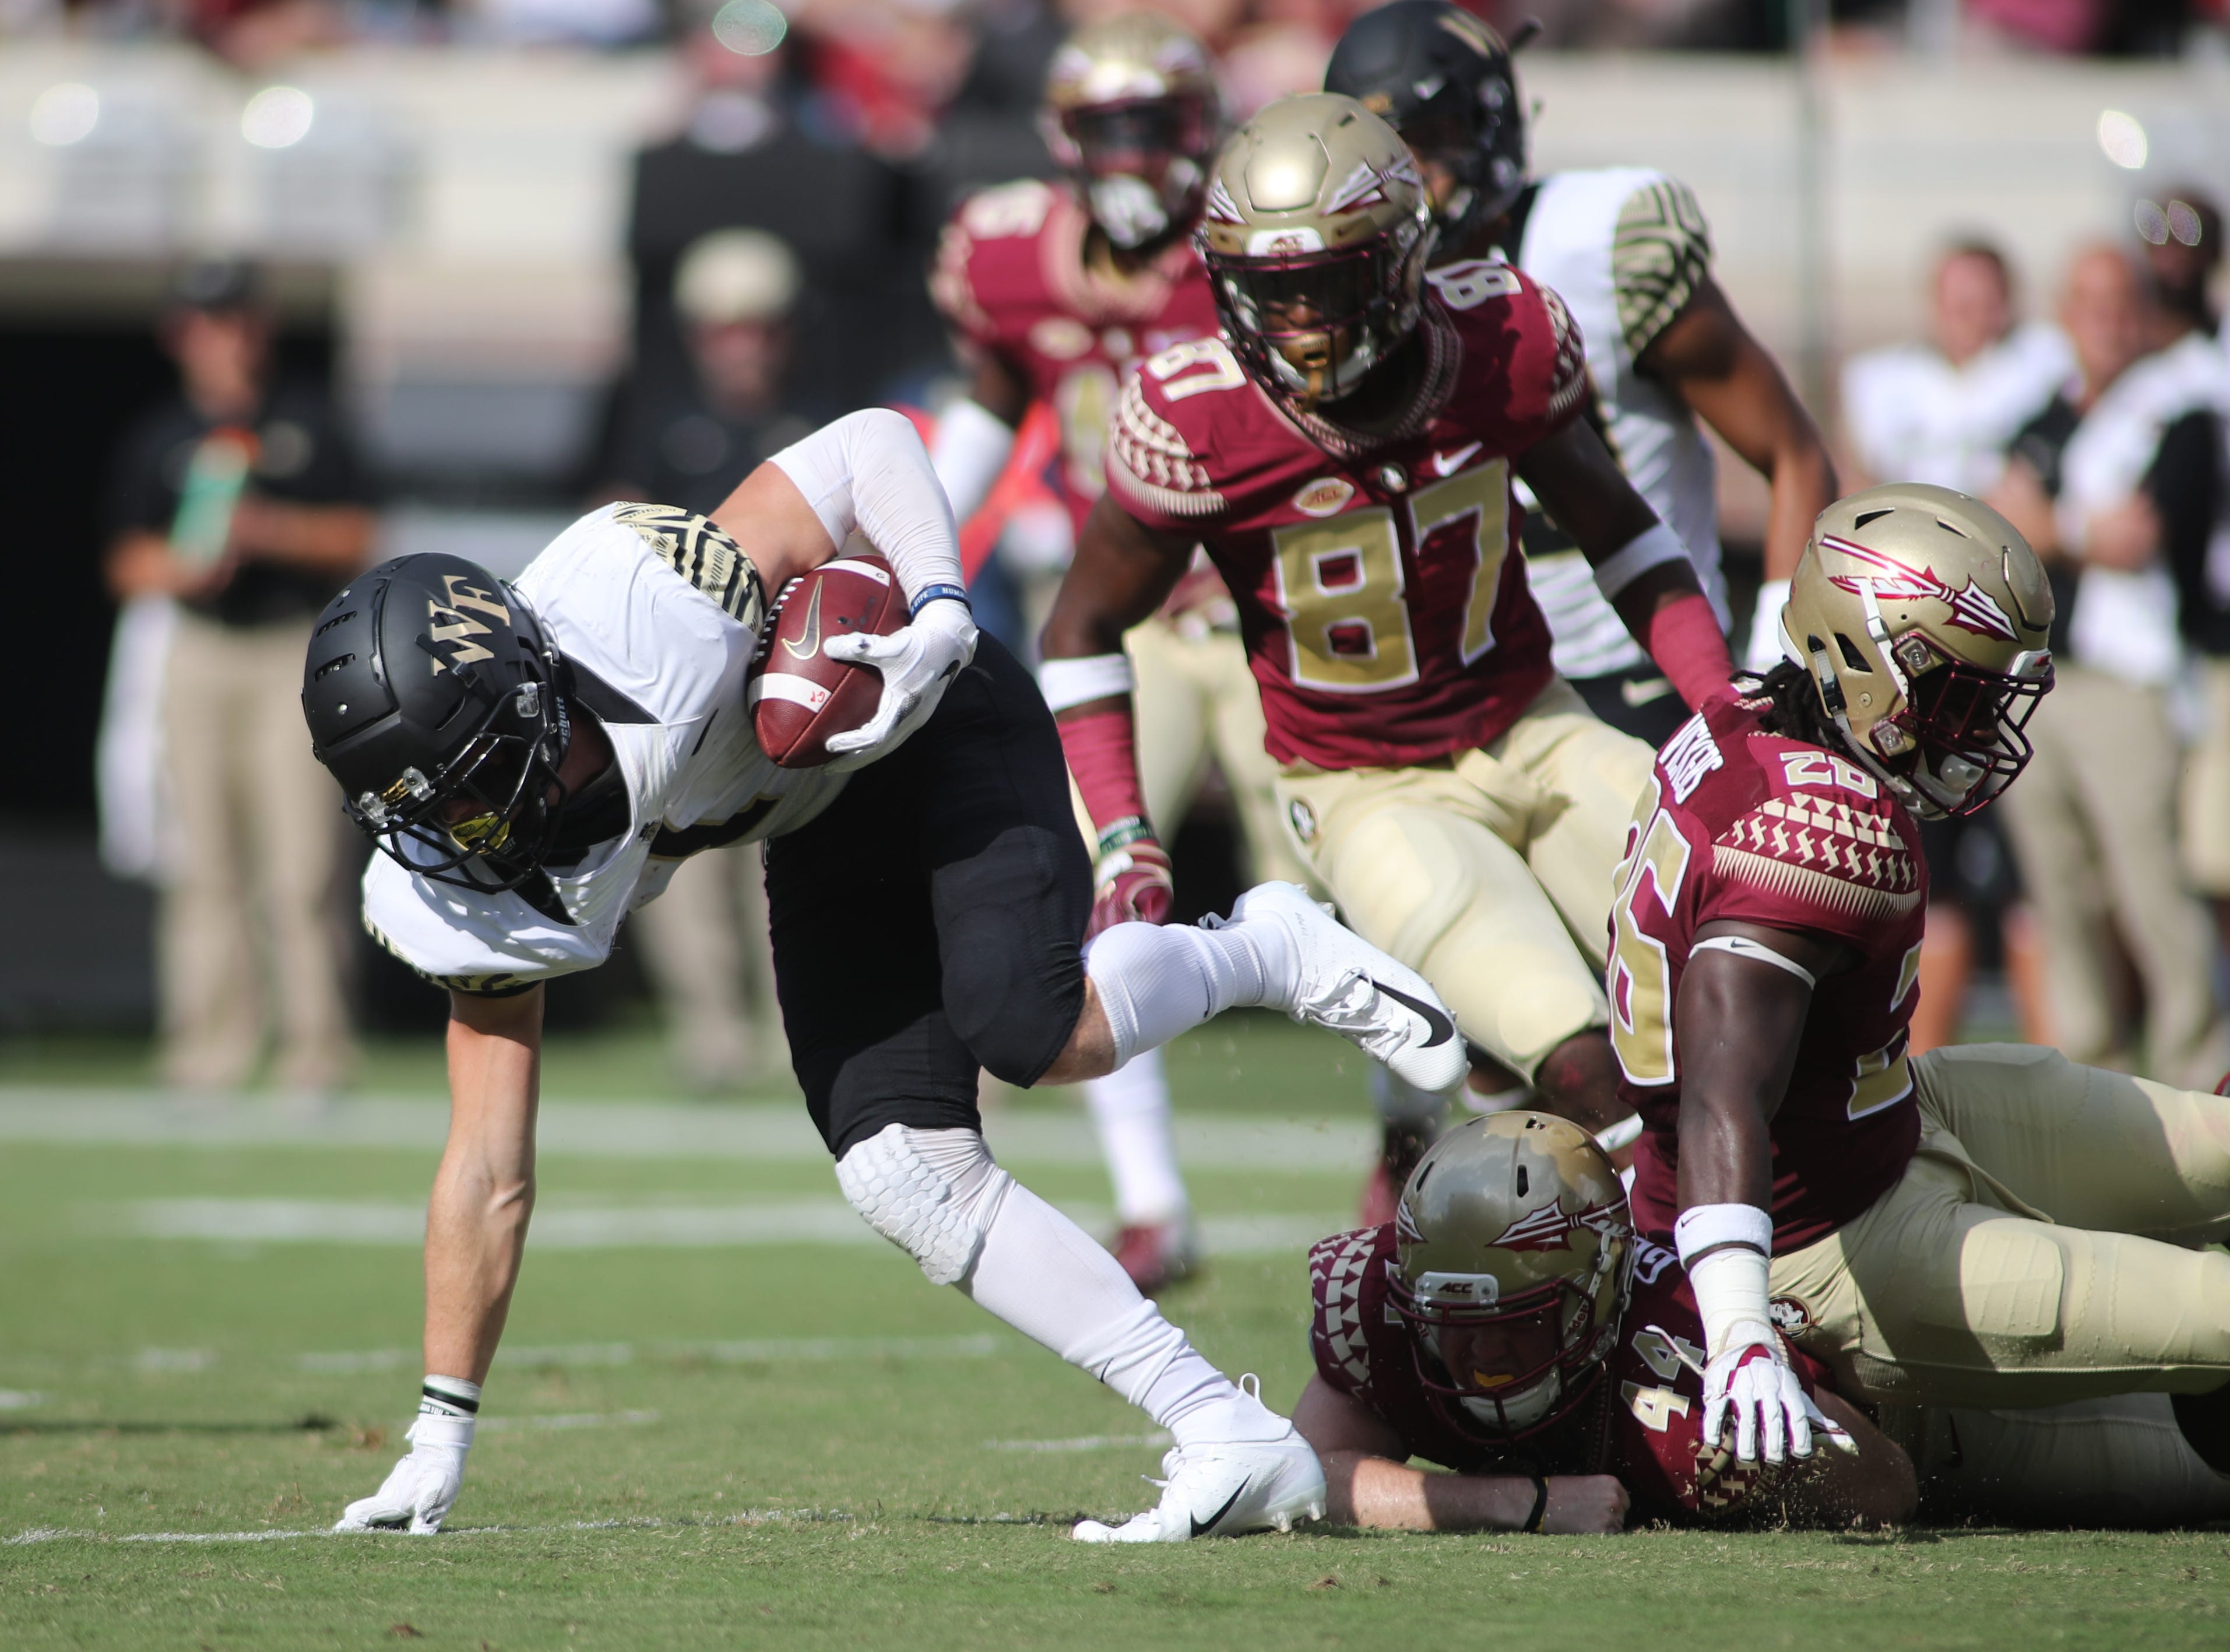 Wake Forest Demon Deacons wide receiver Alex Bachman (1) breaks a tackle during FSU's homecoming game against Wake Forest at Doak S. Campbell Stadium Saturday, Oct. 20, 2018.